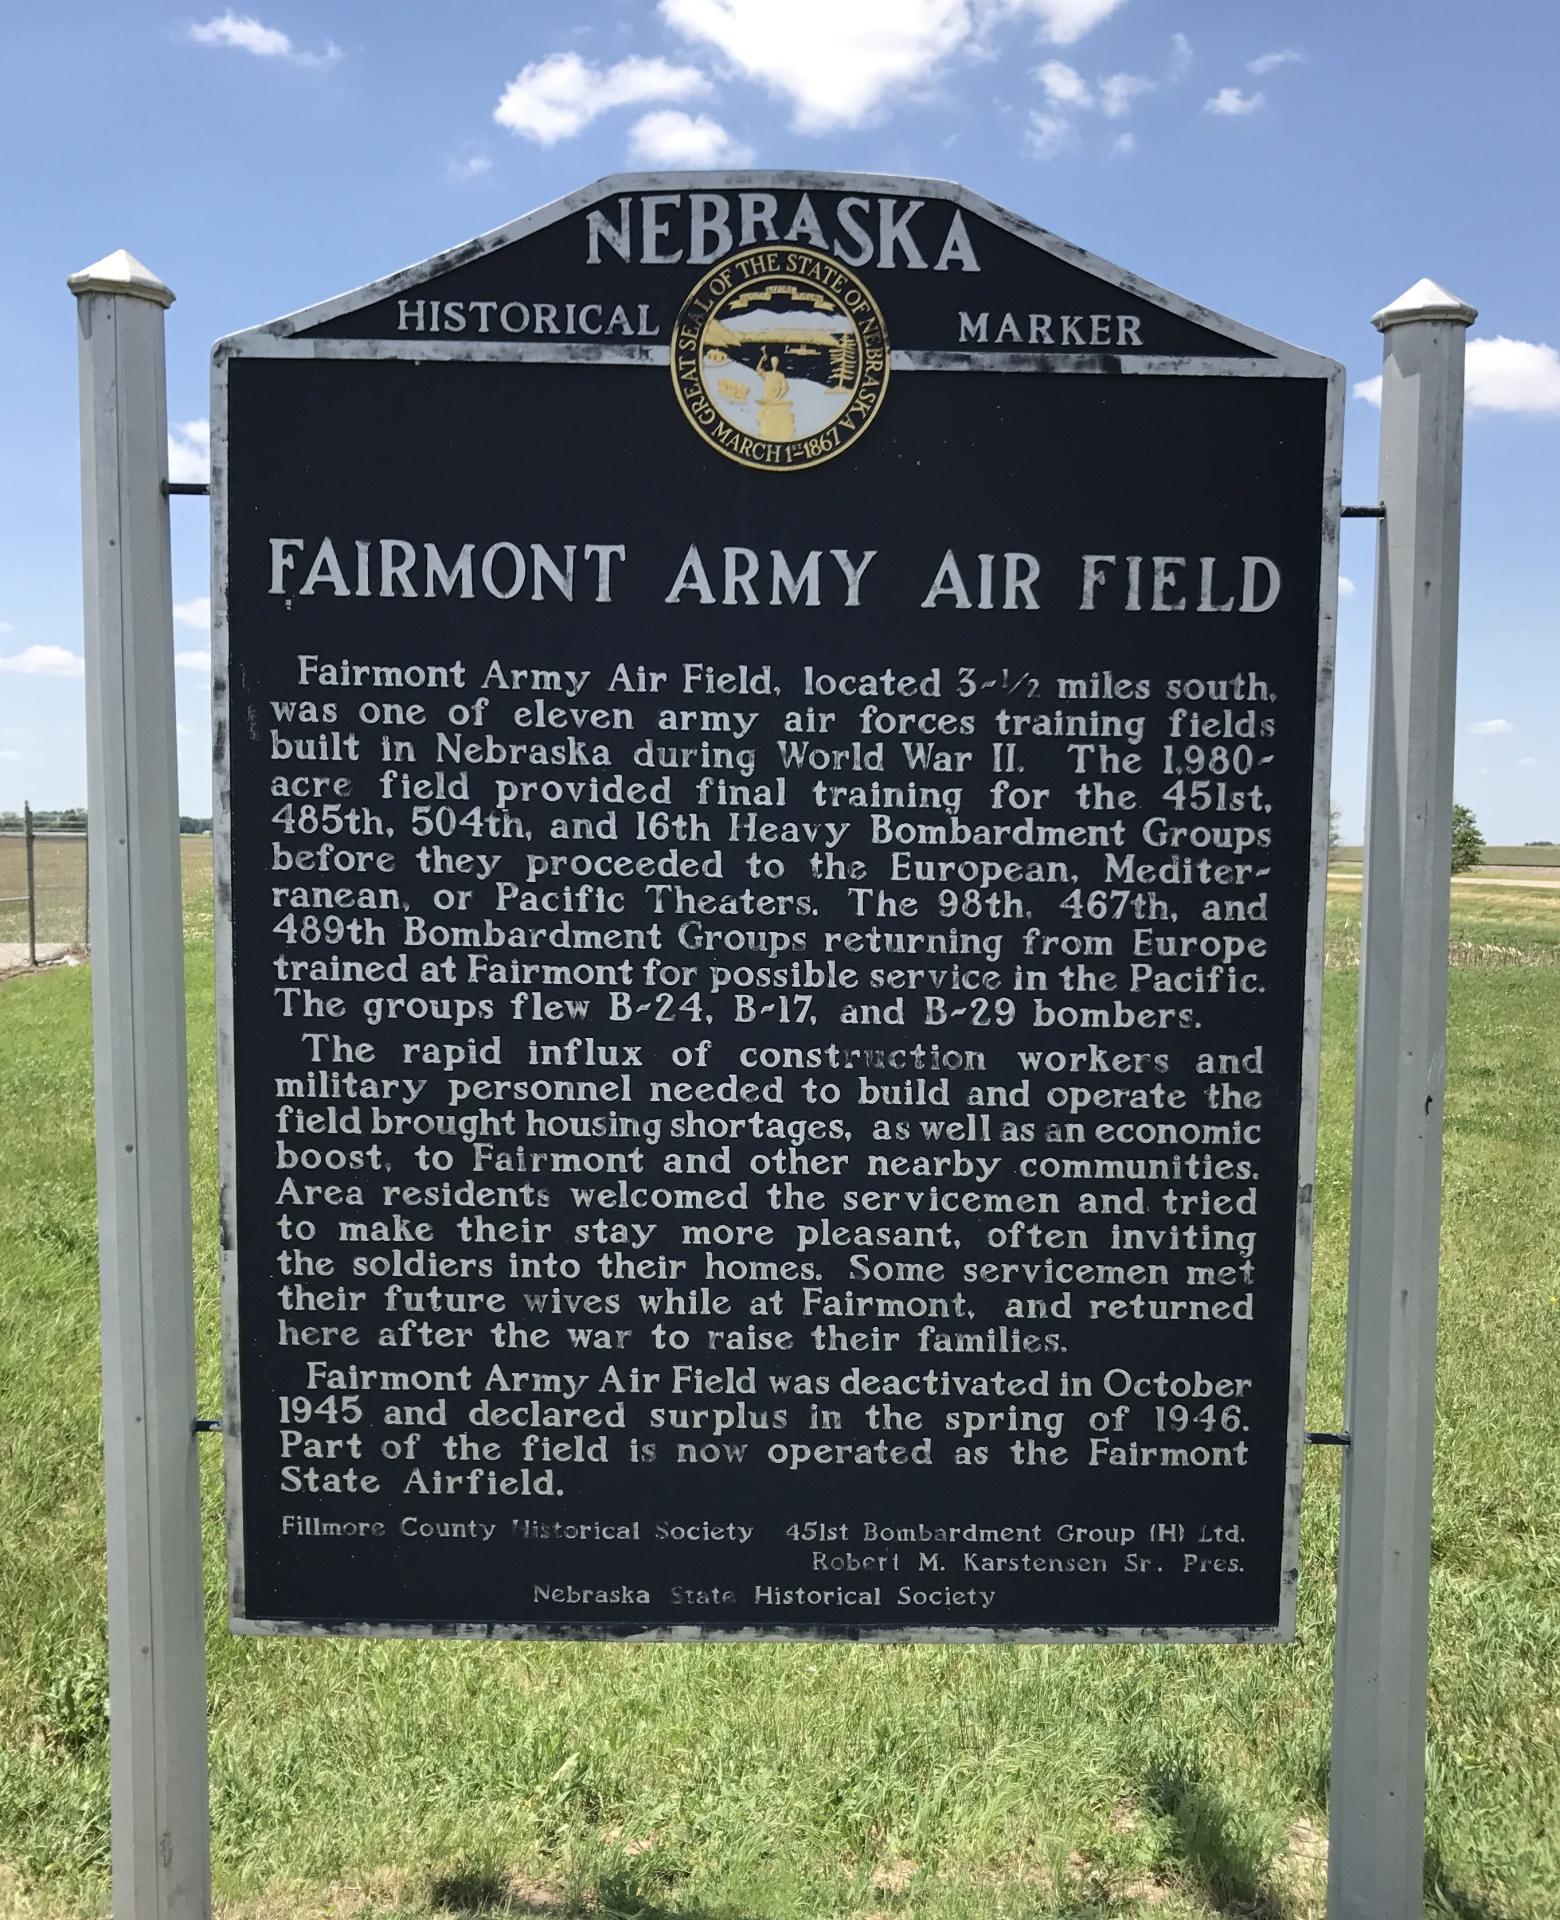 Fairmont Army Air Field - U.S Highway 6